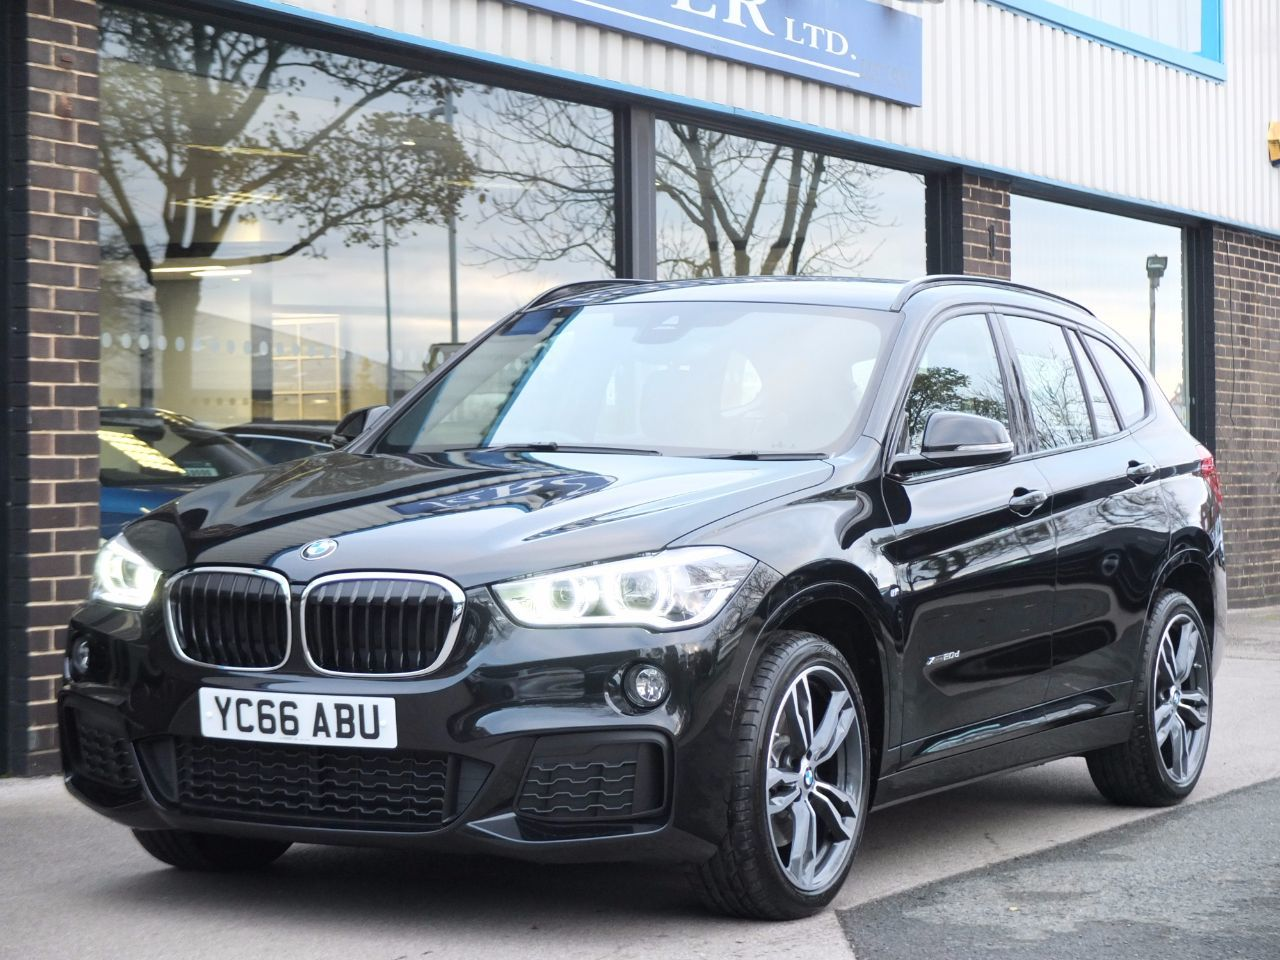 BMW X1 2.0 xDrive 20d M Sport Step Auto (Navigation Plus Pack, 19in Alloy Wheels) Estate Diesel Black Sapphire Metallic